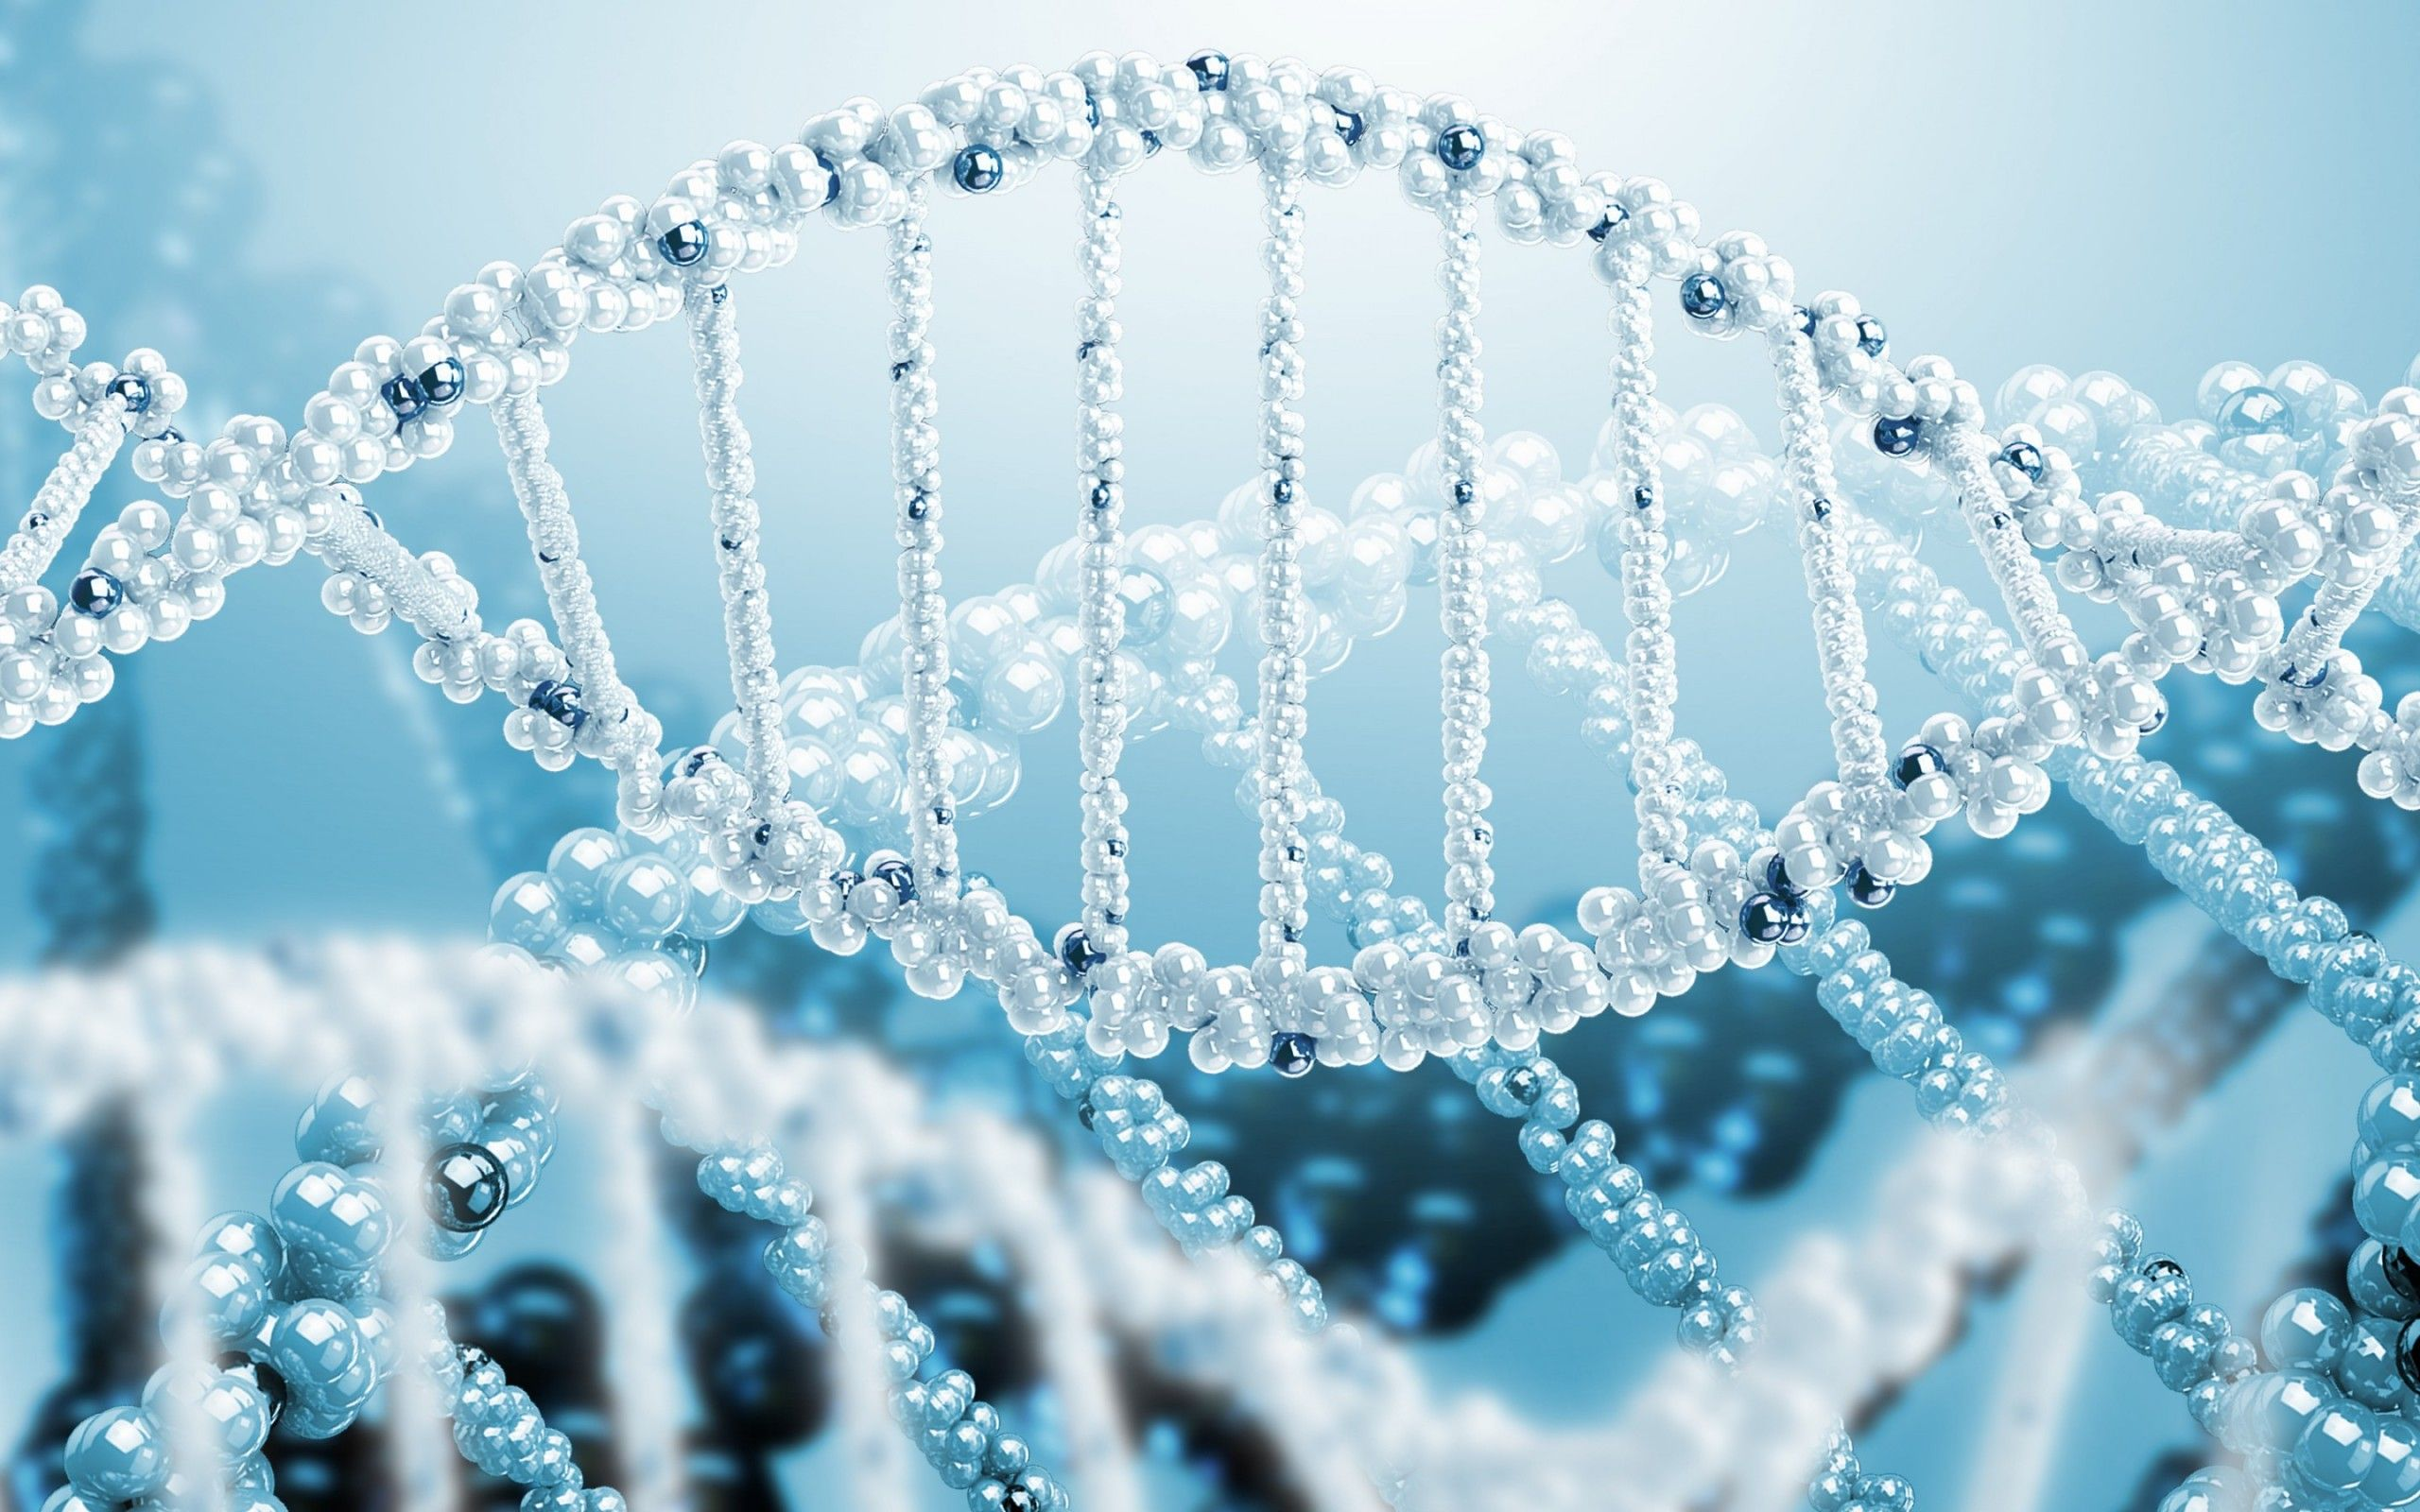 DNA Wallpaper Find Best Latest In HD For Your PC Desktop Background And Mobile Phones